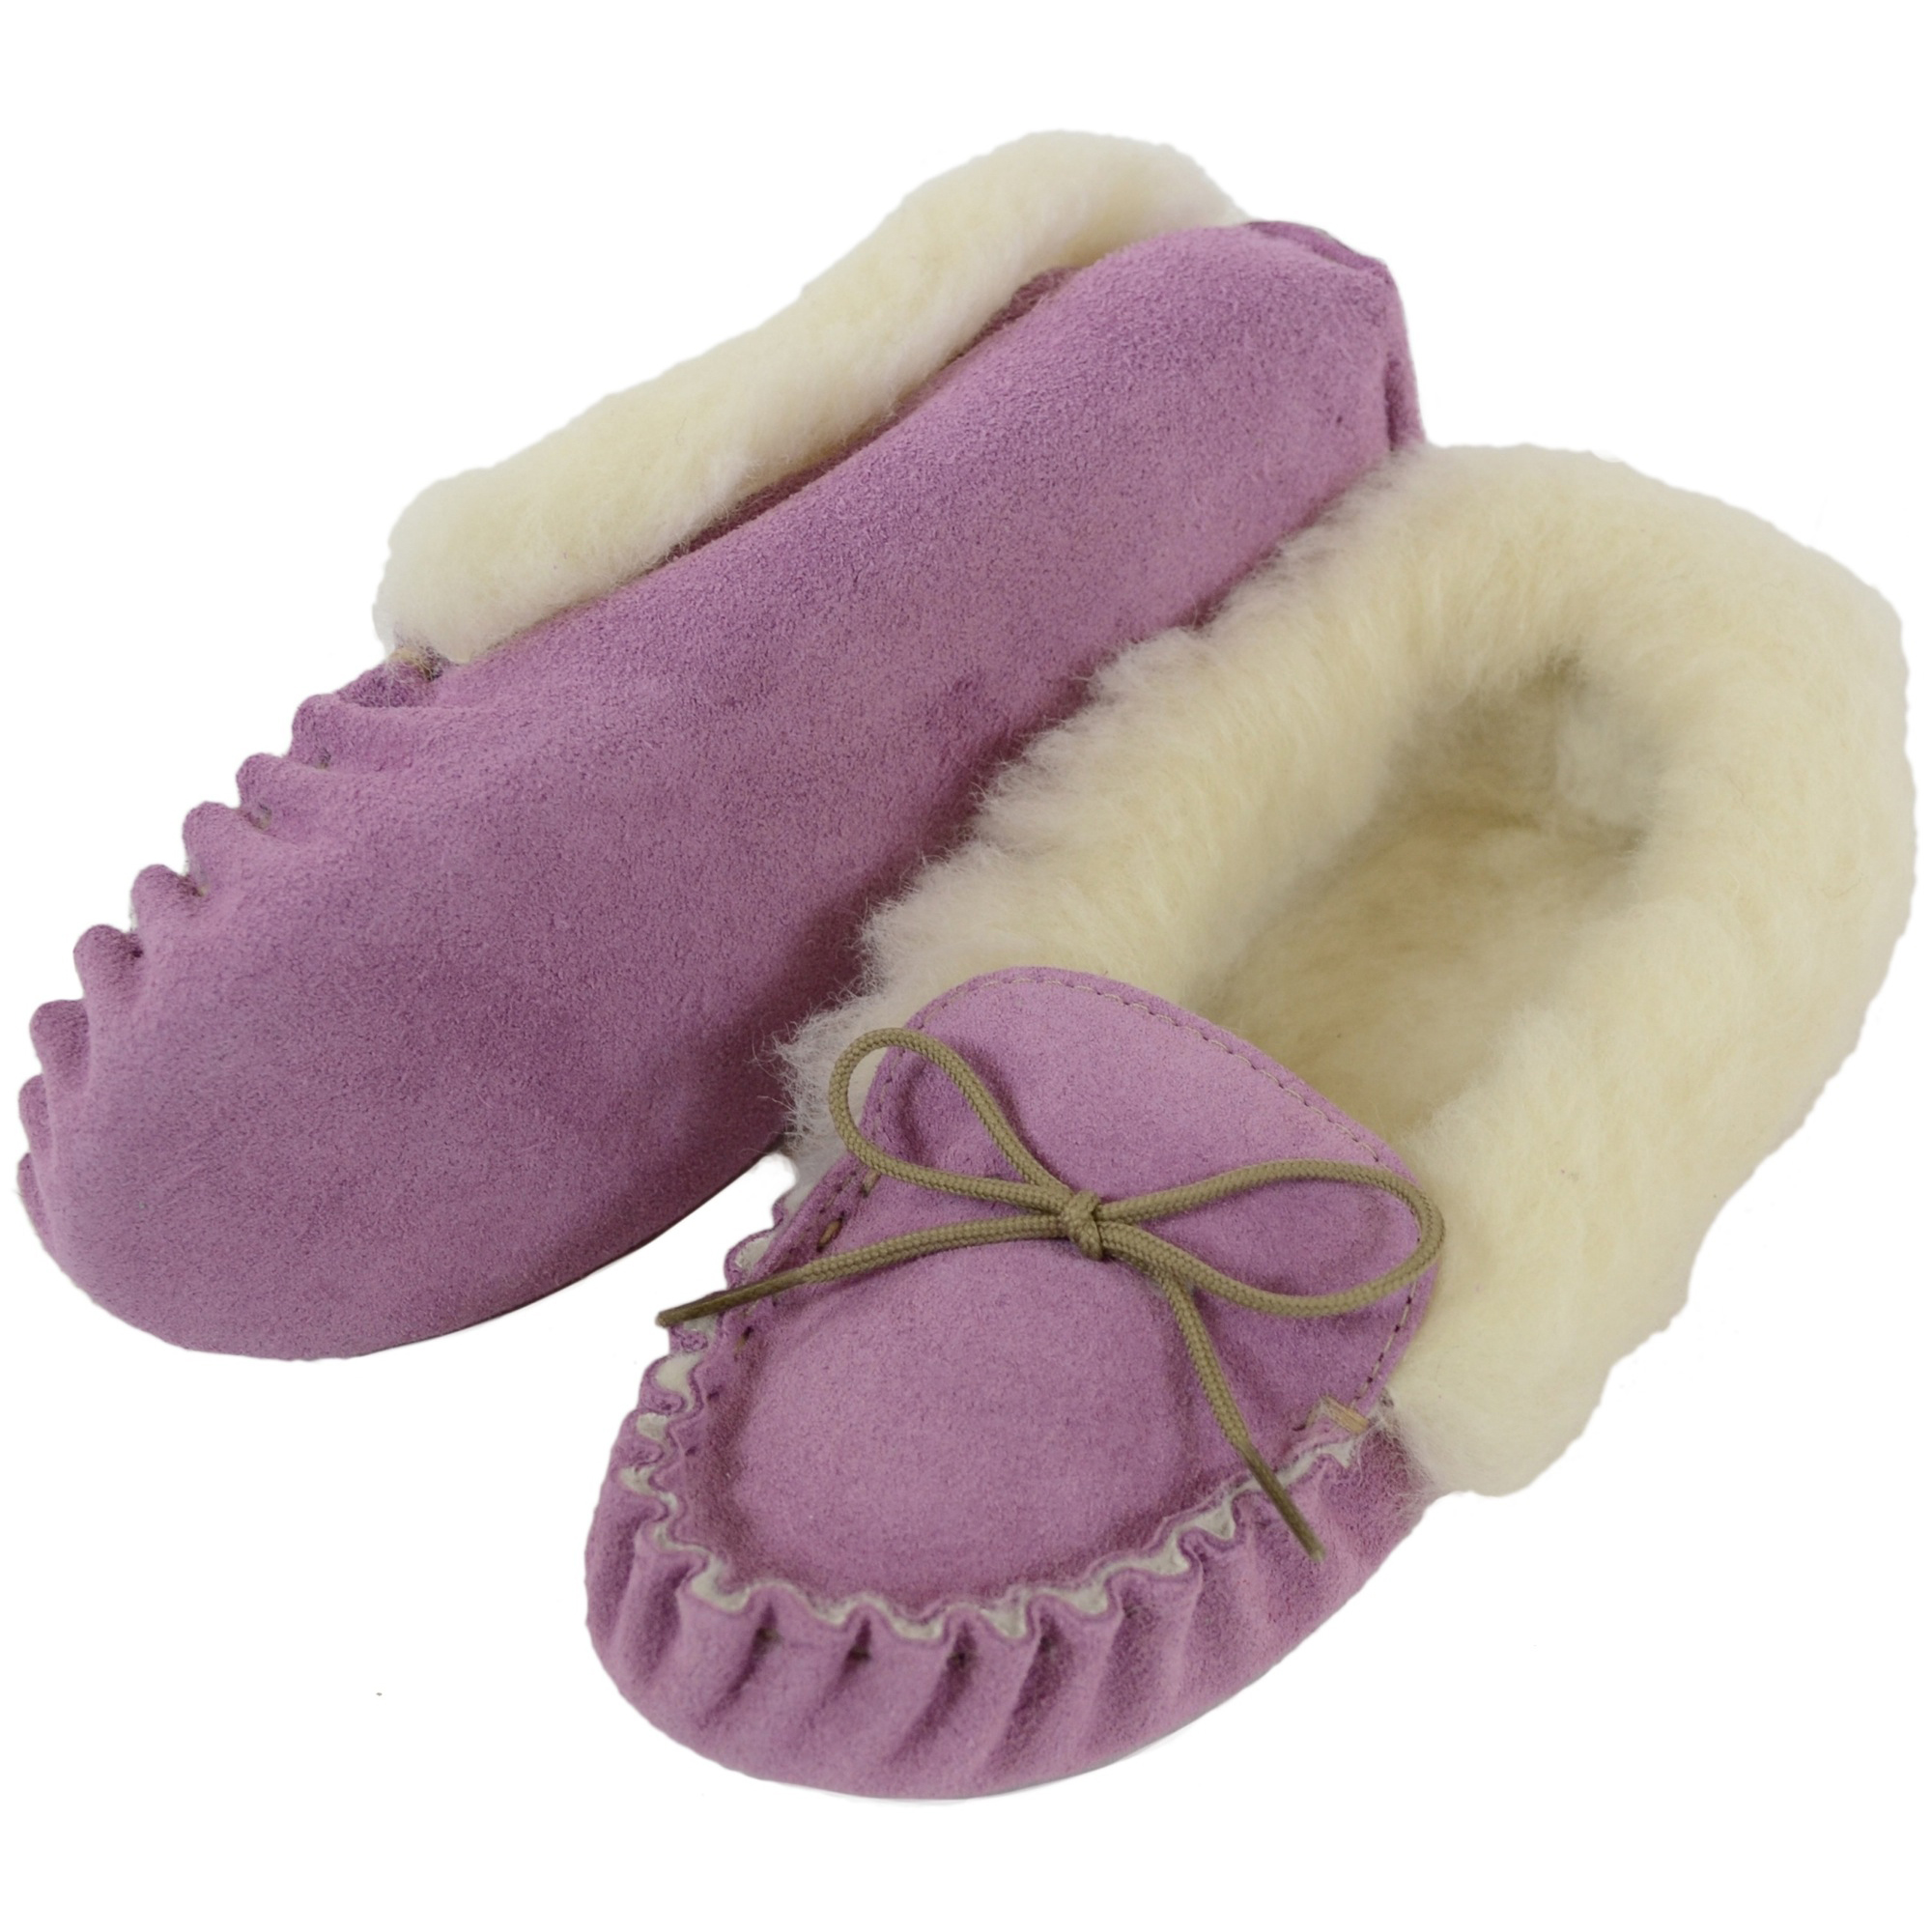 Snugrugs Ladies Wool Suede Moccasin slippers Suede Sole